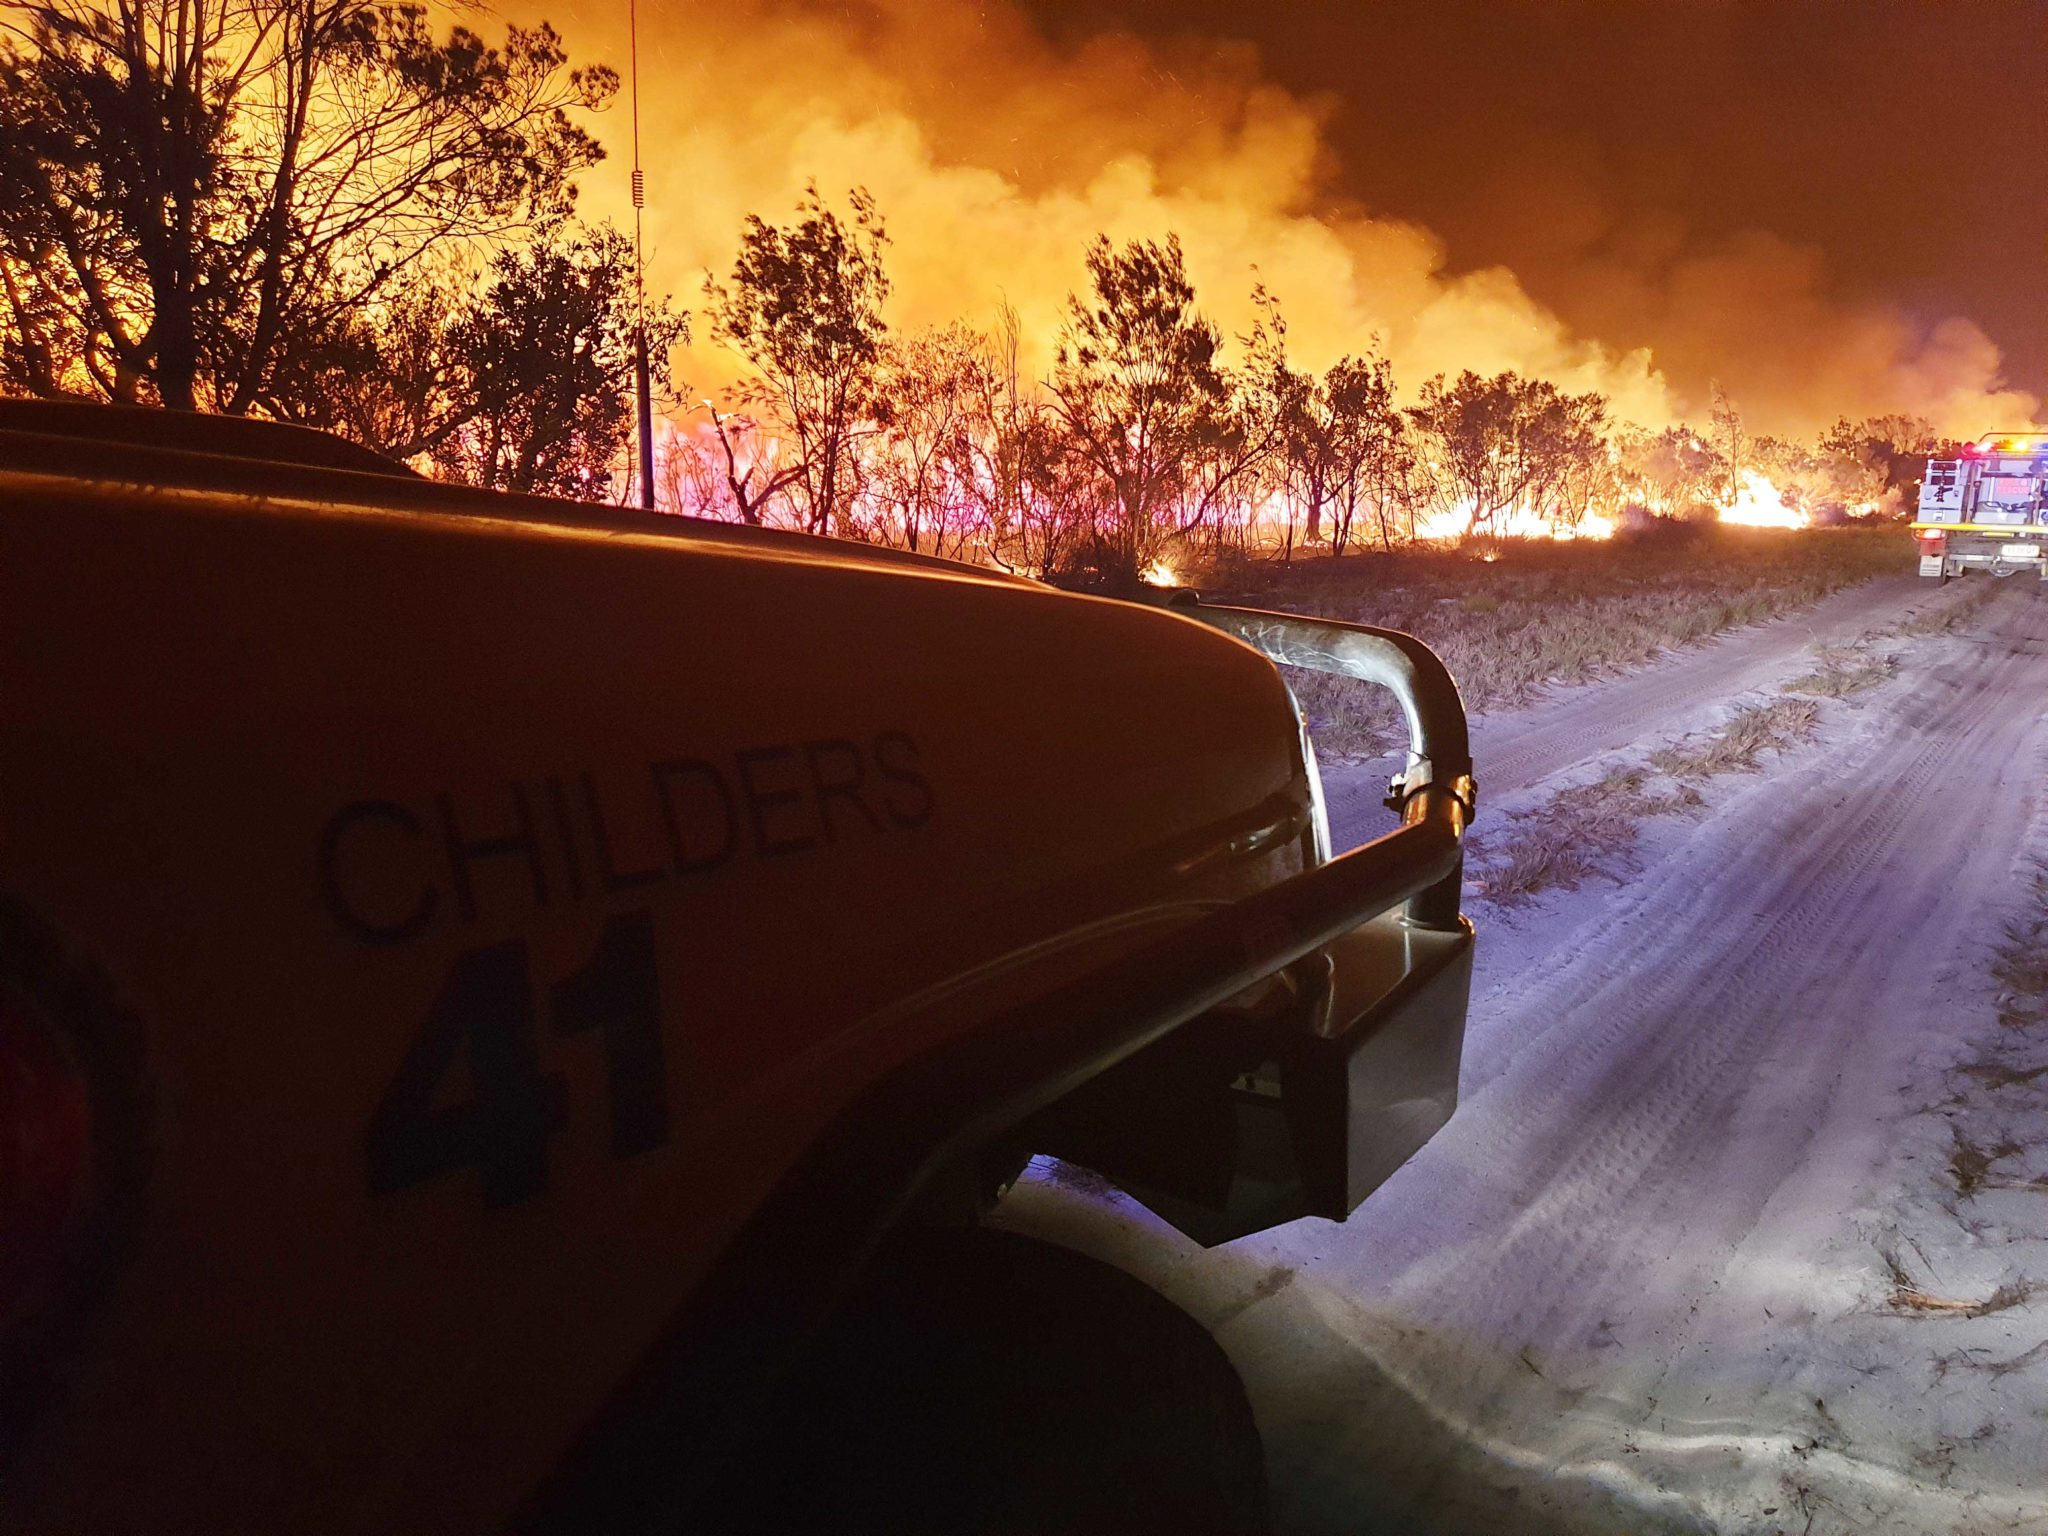 Childers fire crews in action during the November 2019 fires in the Burrum Coast National Park near Woodgate Beach.